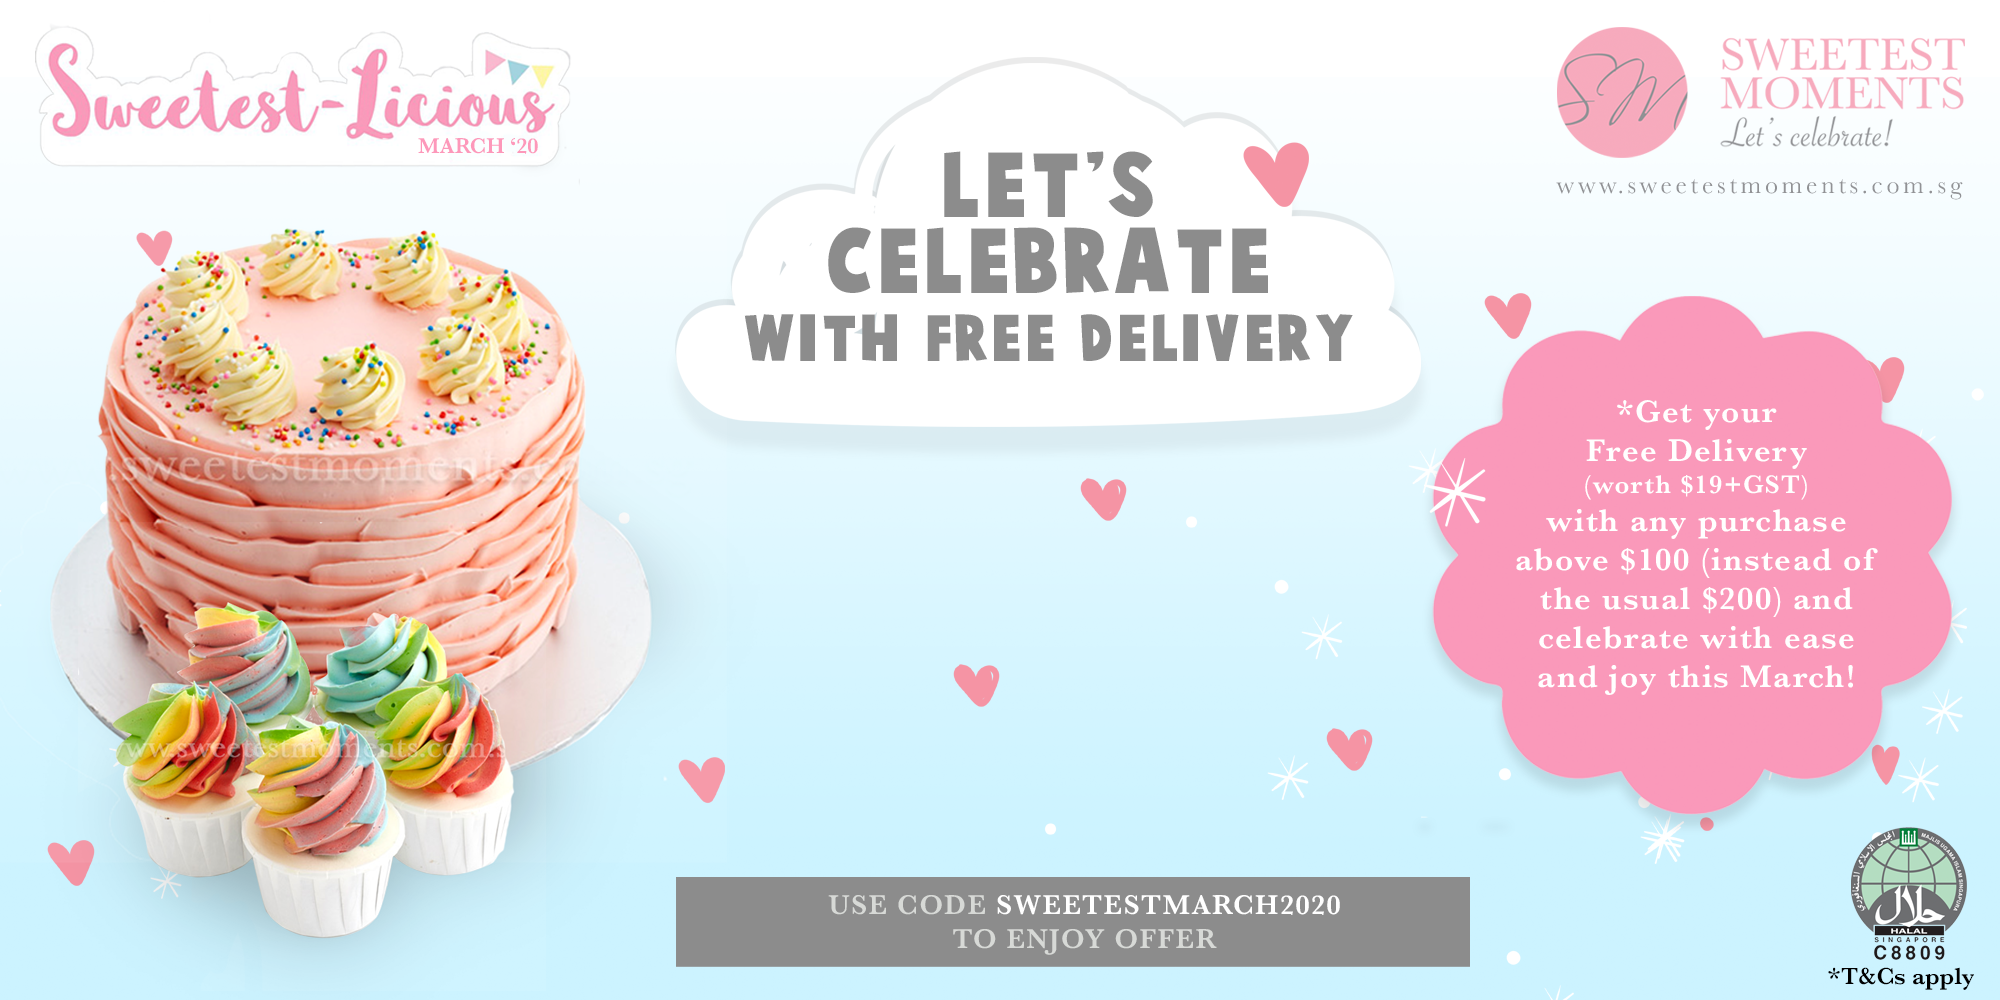 Sweetestlicious March 2020 Promotion